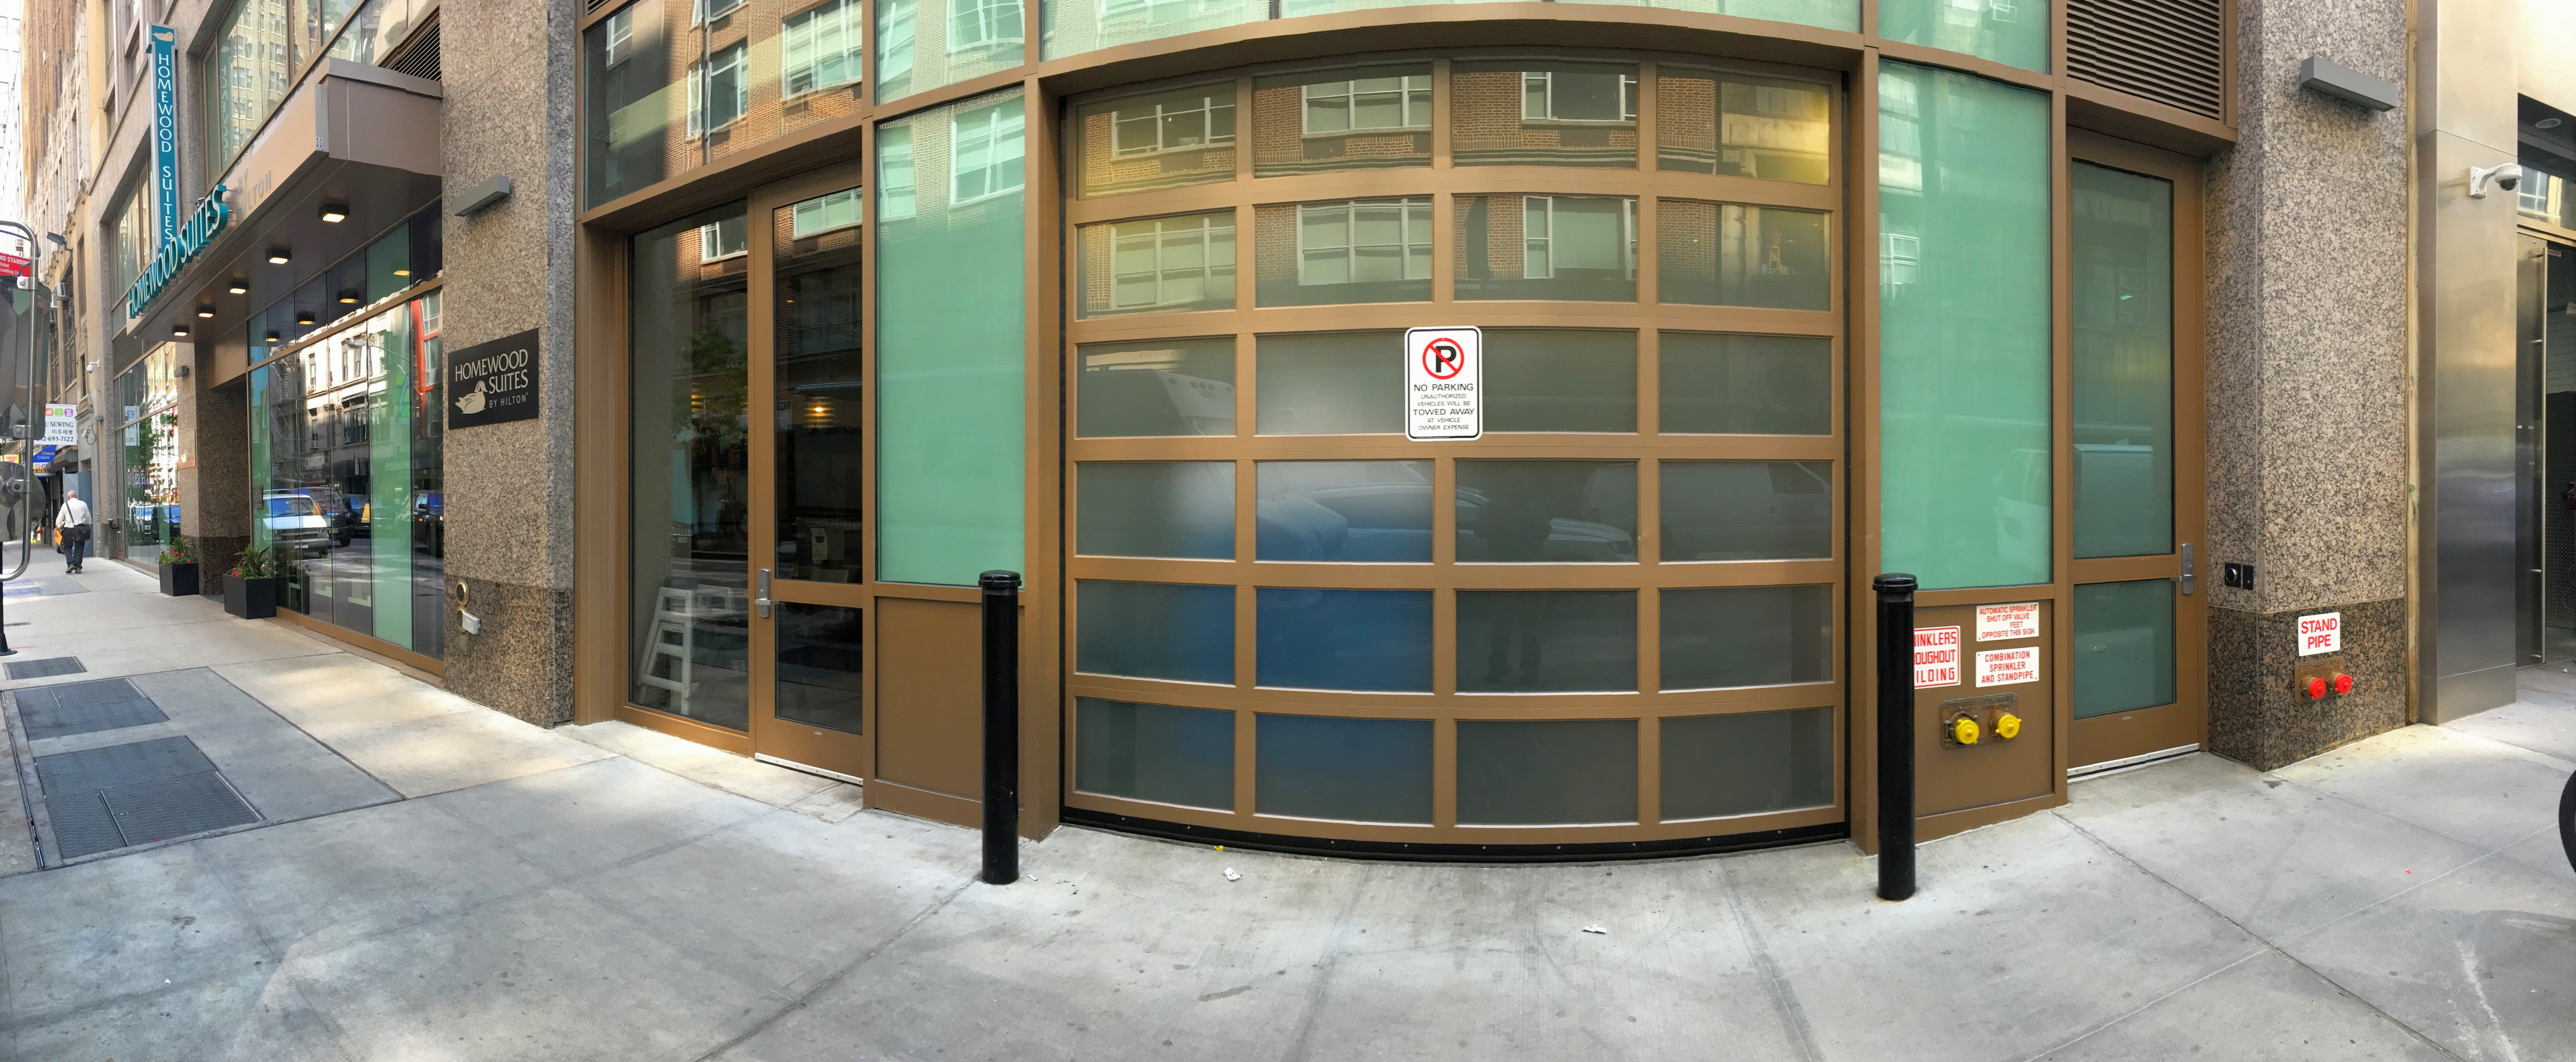 Homewood Suites hired us to install a beautiful and stylish aluminum glass garage door for their storefront retail loading dock.